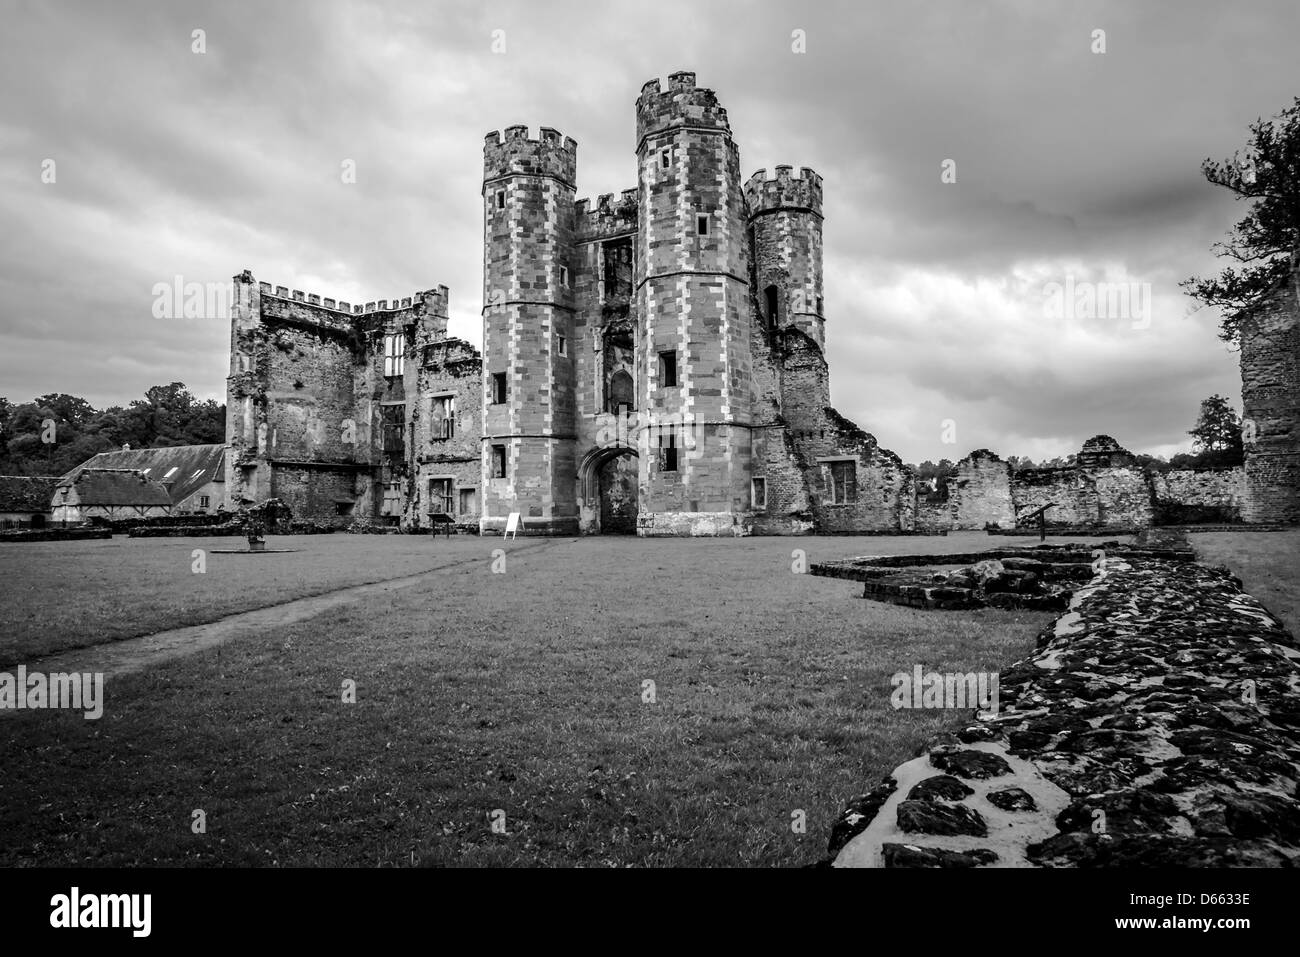 Black and White of Cowdray Castle in Midhurst, West Sussex, UK - Stock Image